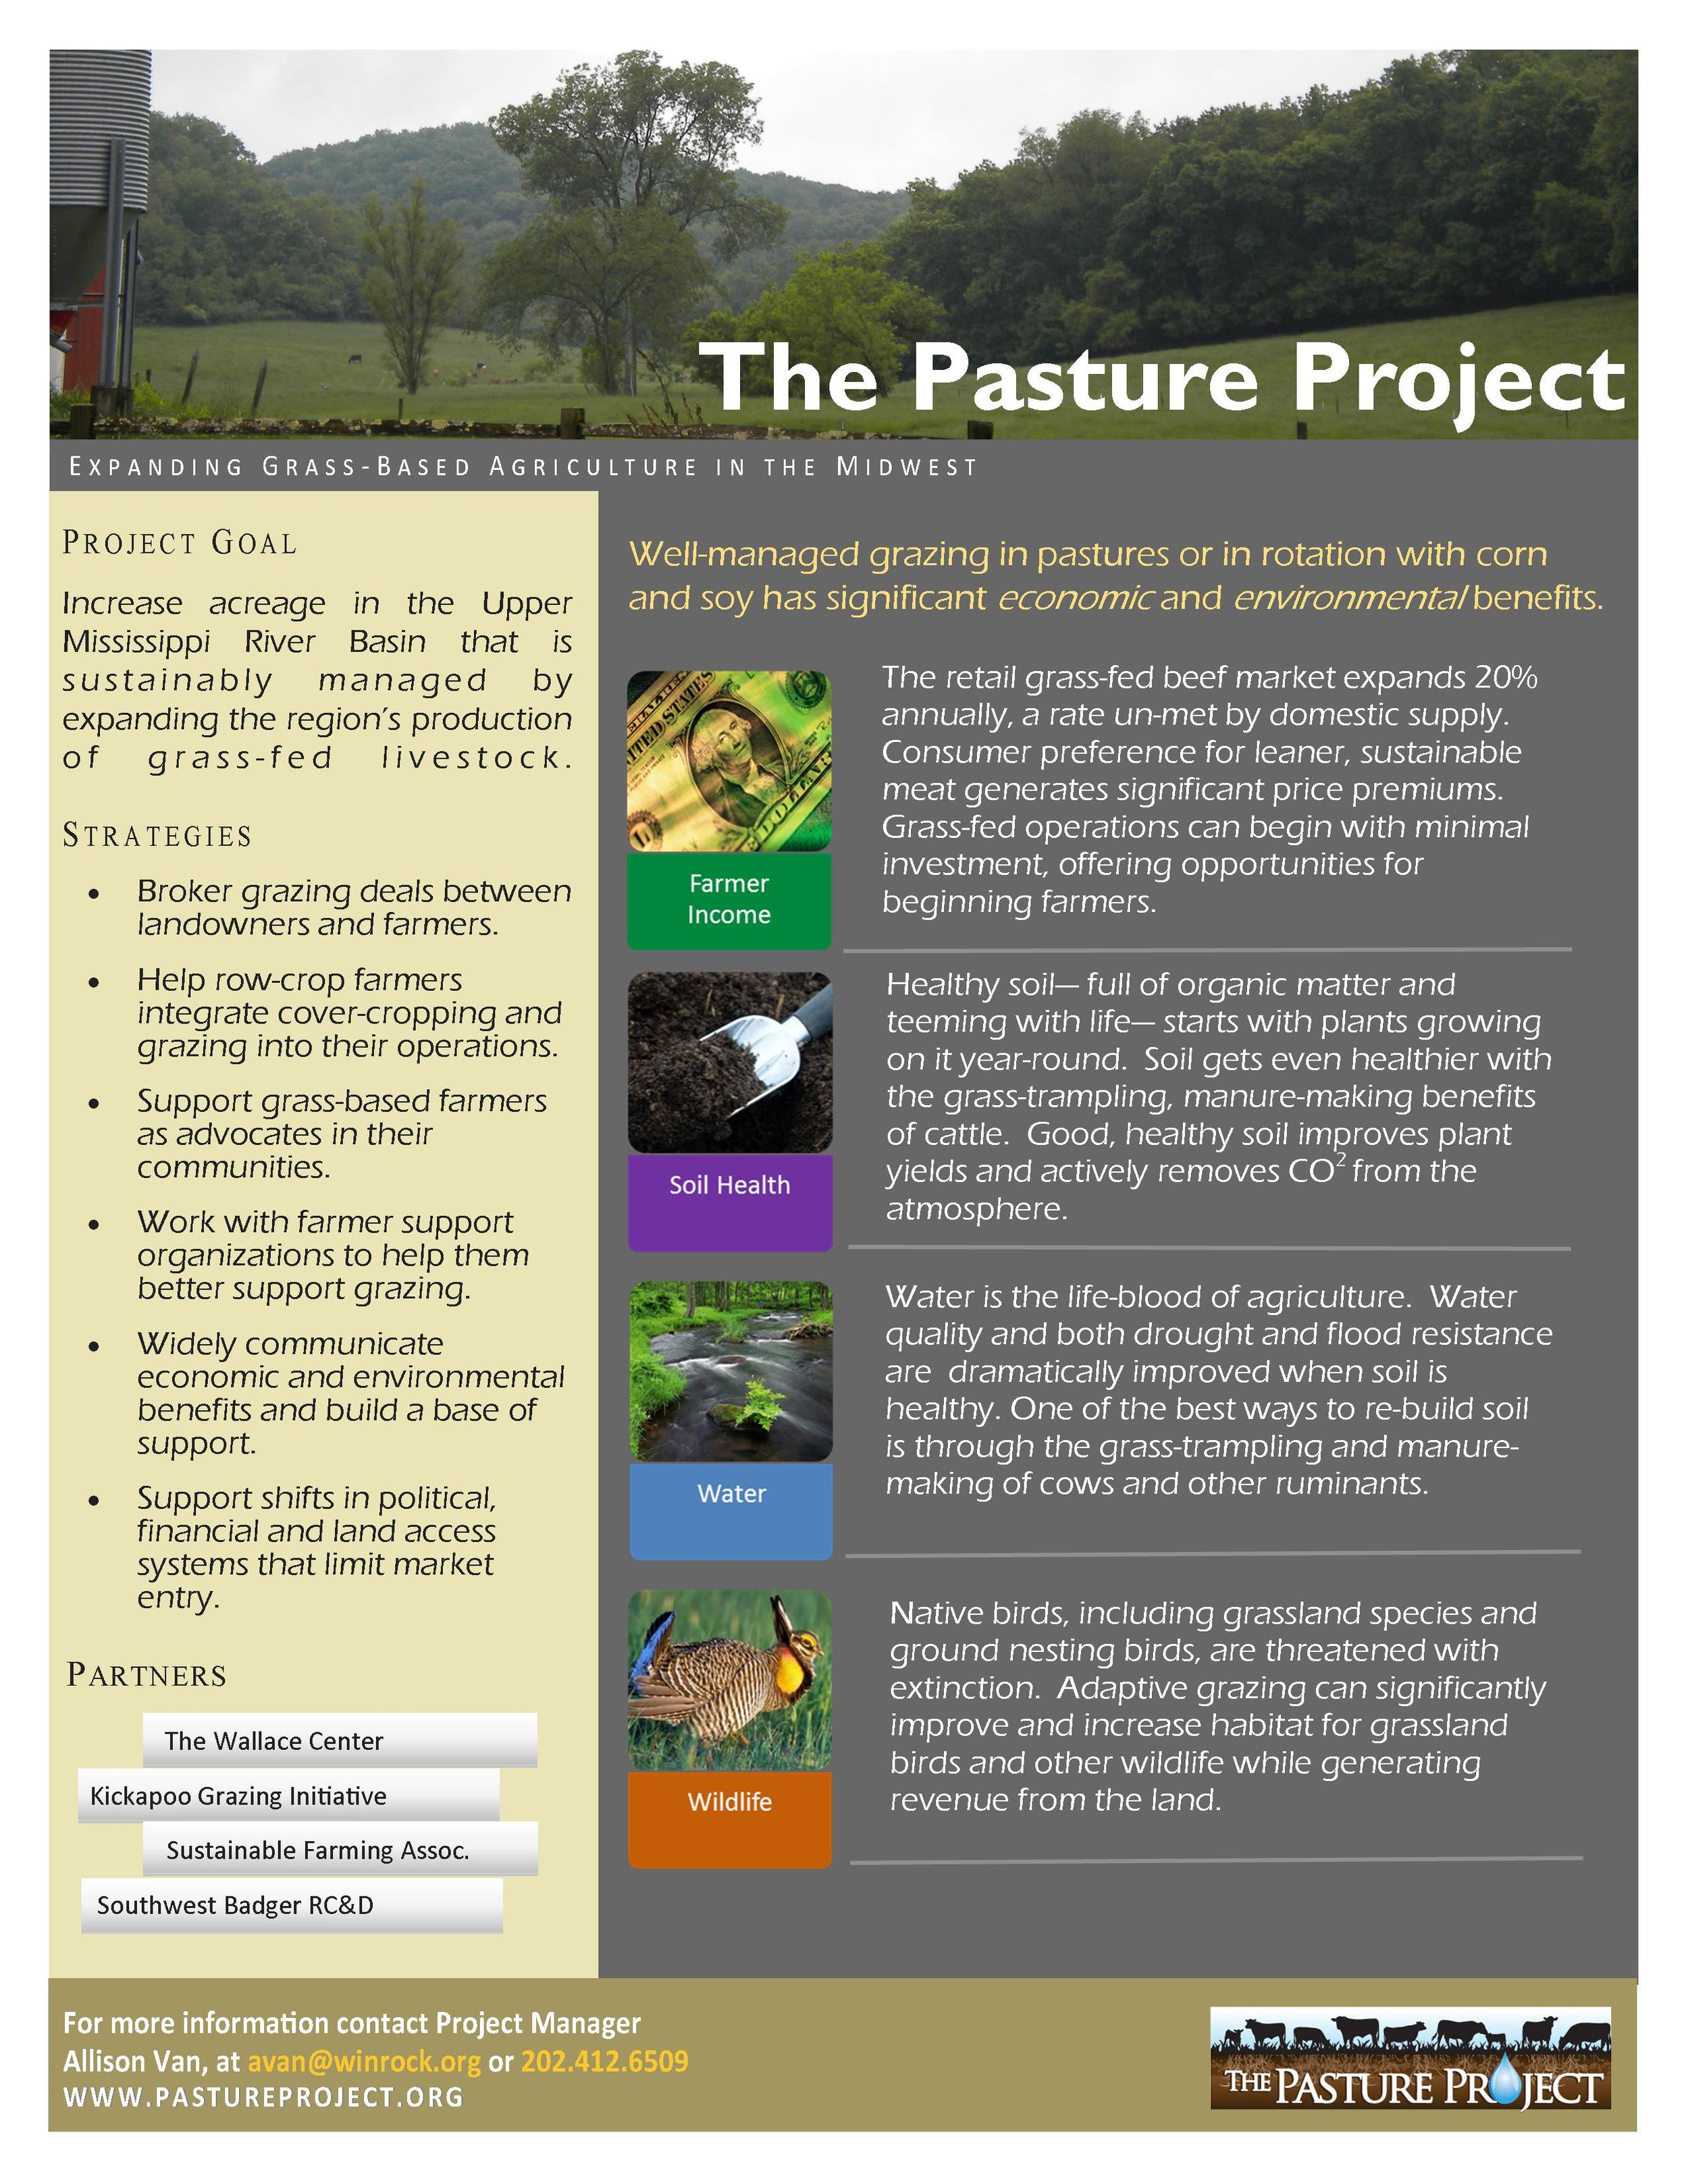 Pasture Project Overview